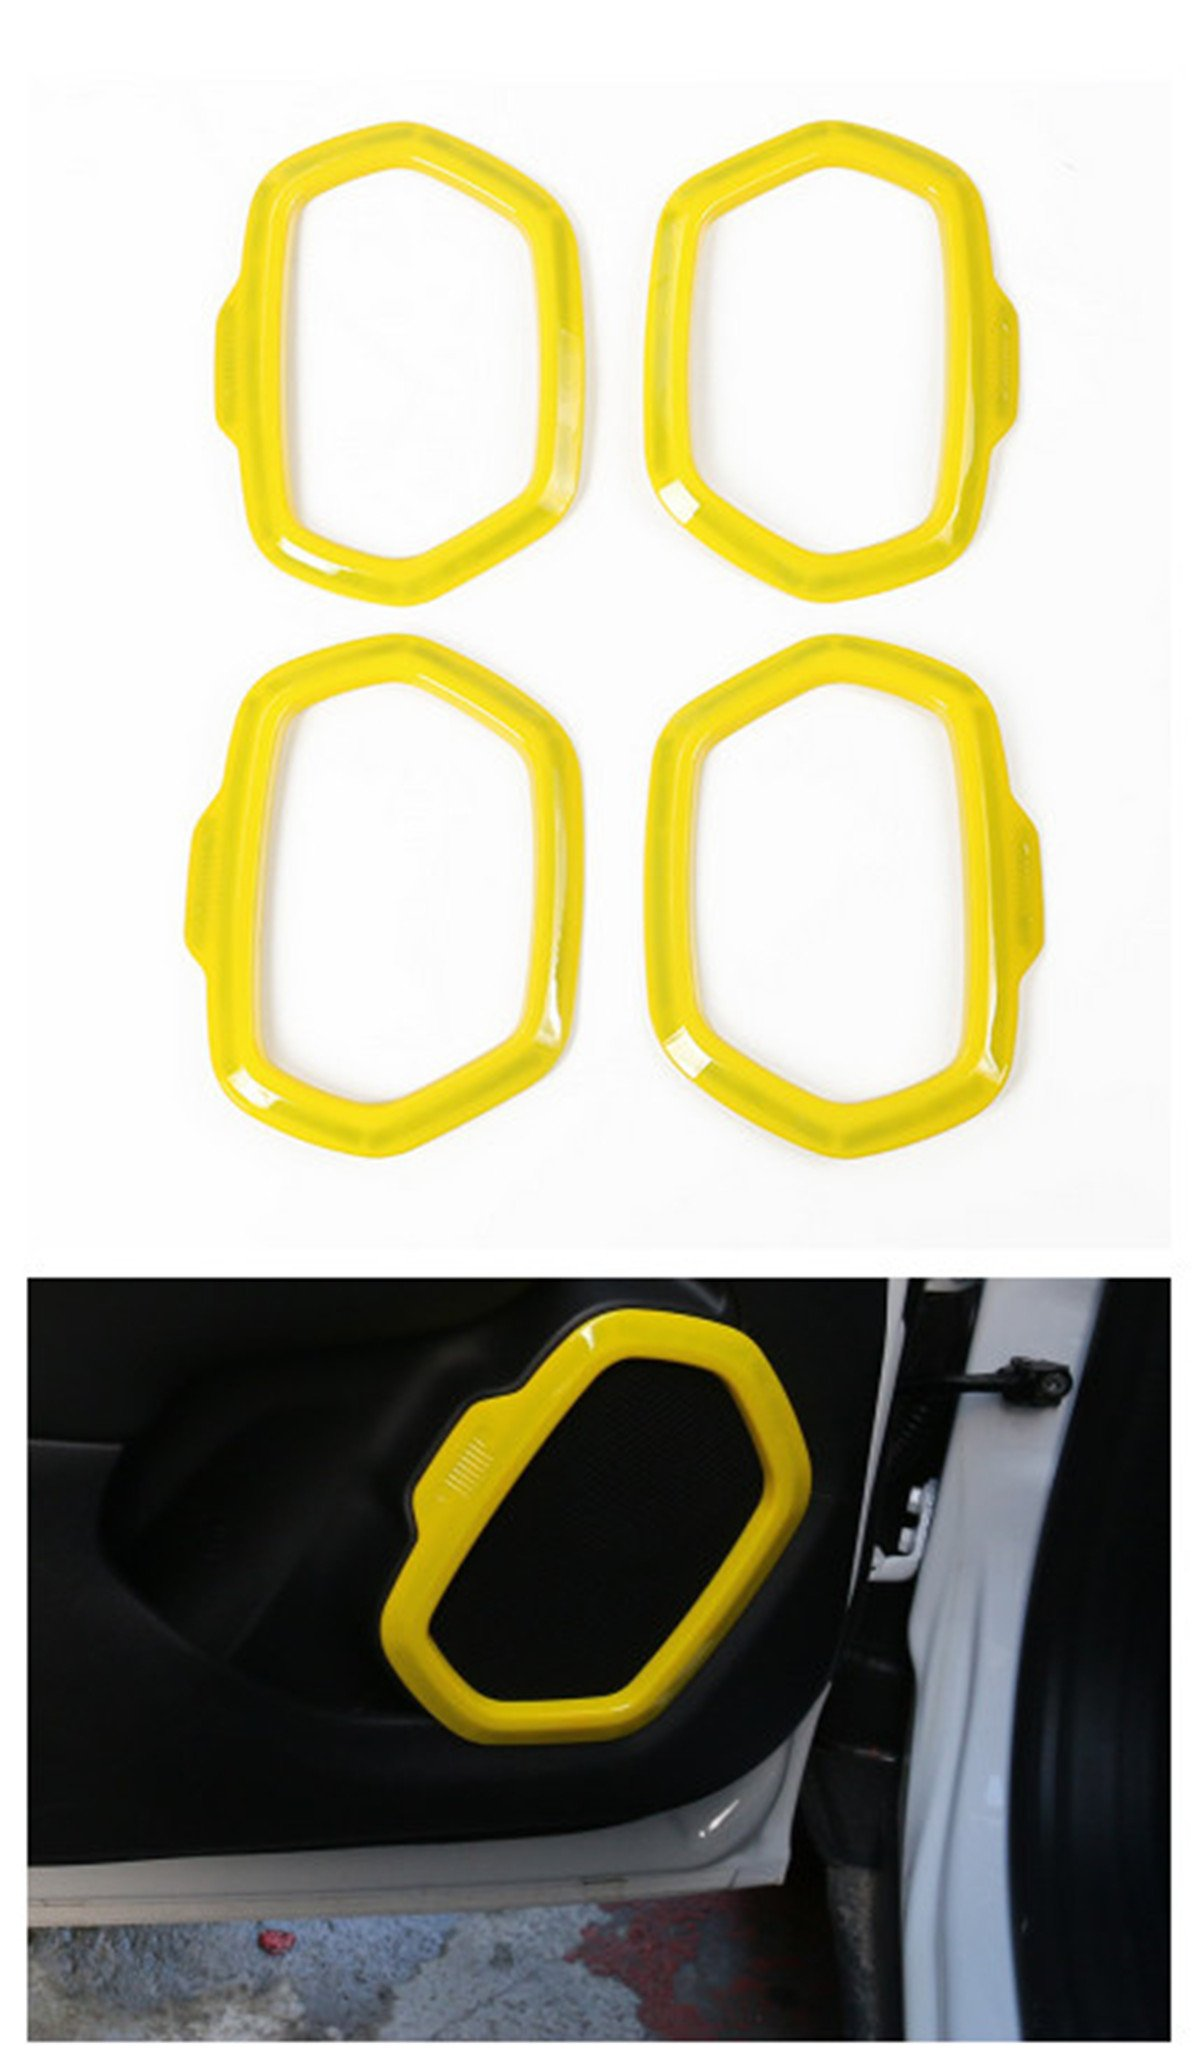 Dwindish Yellow ABS Interior Car Door Sound Speaker Audio Ring Cover Trim for Jeep Renegade 2015-2017